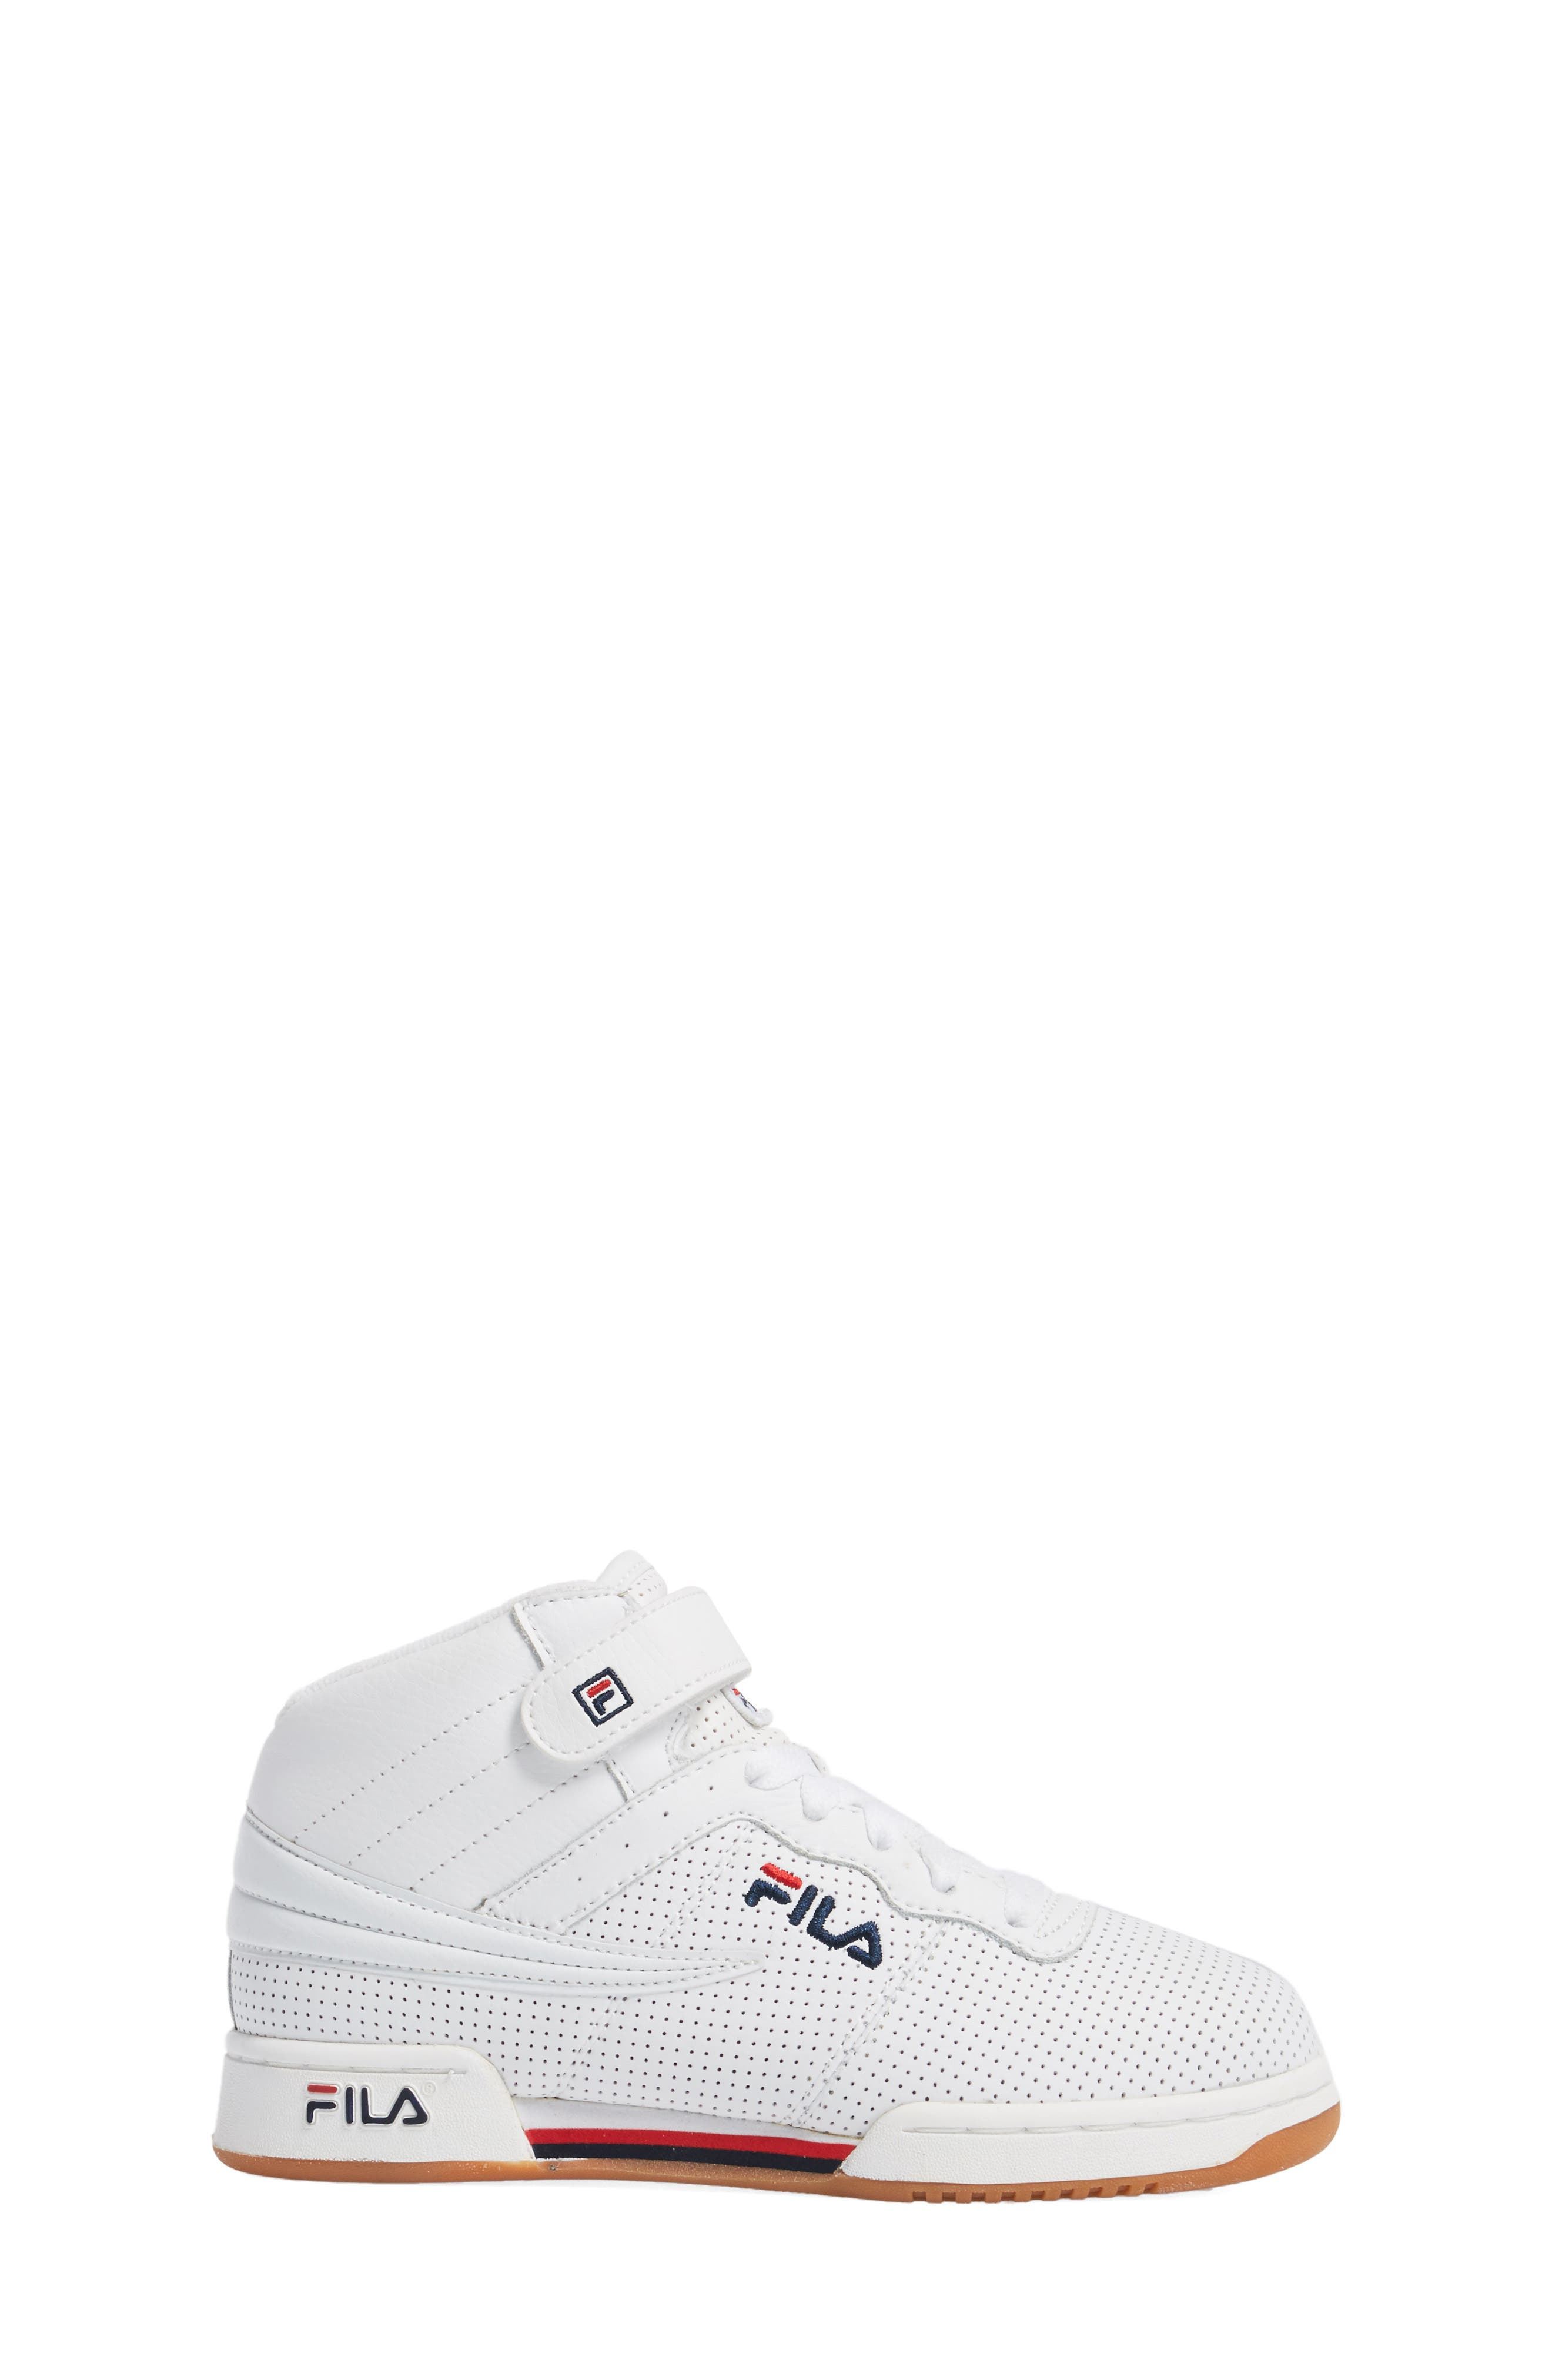 F-13 Perforated High Top Sneaker,                             Alternate thumbnail 4, color,                             White/Navy/Red